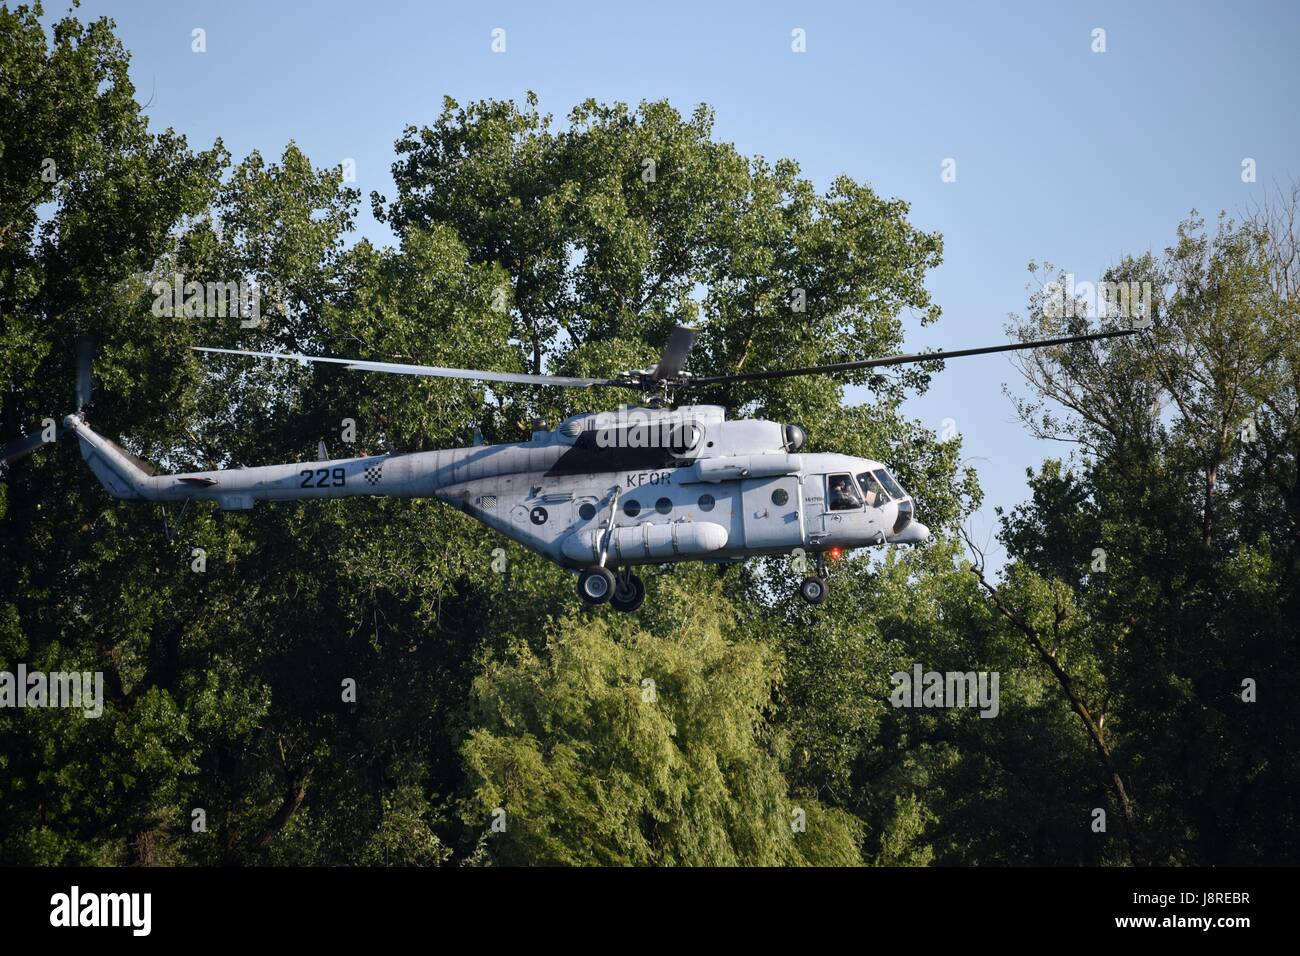 Day of Croatian military forces celebrated with demonstration of technic and soldiers skills. Helicopter, boats, Stock Photo